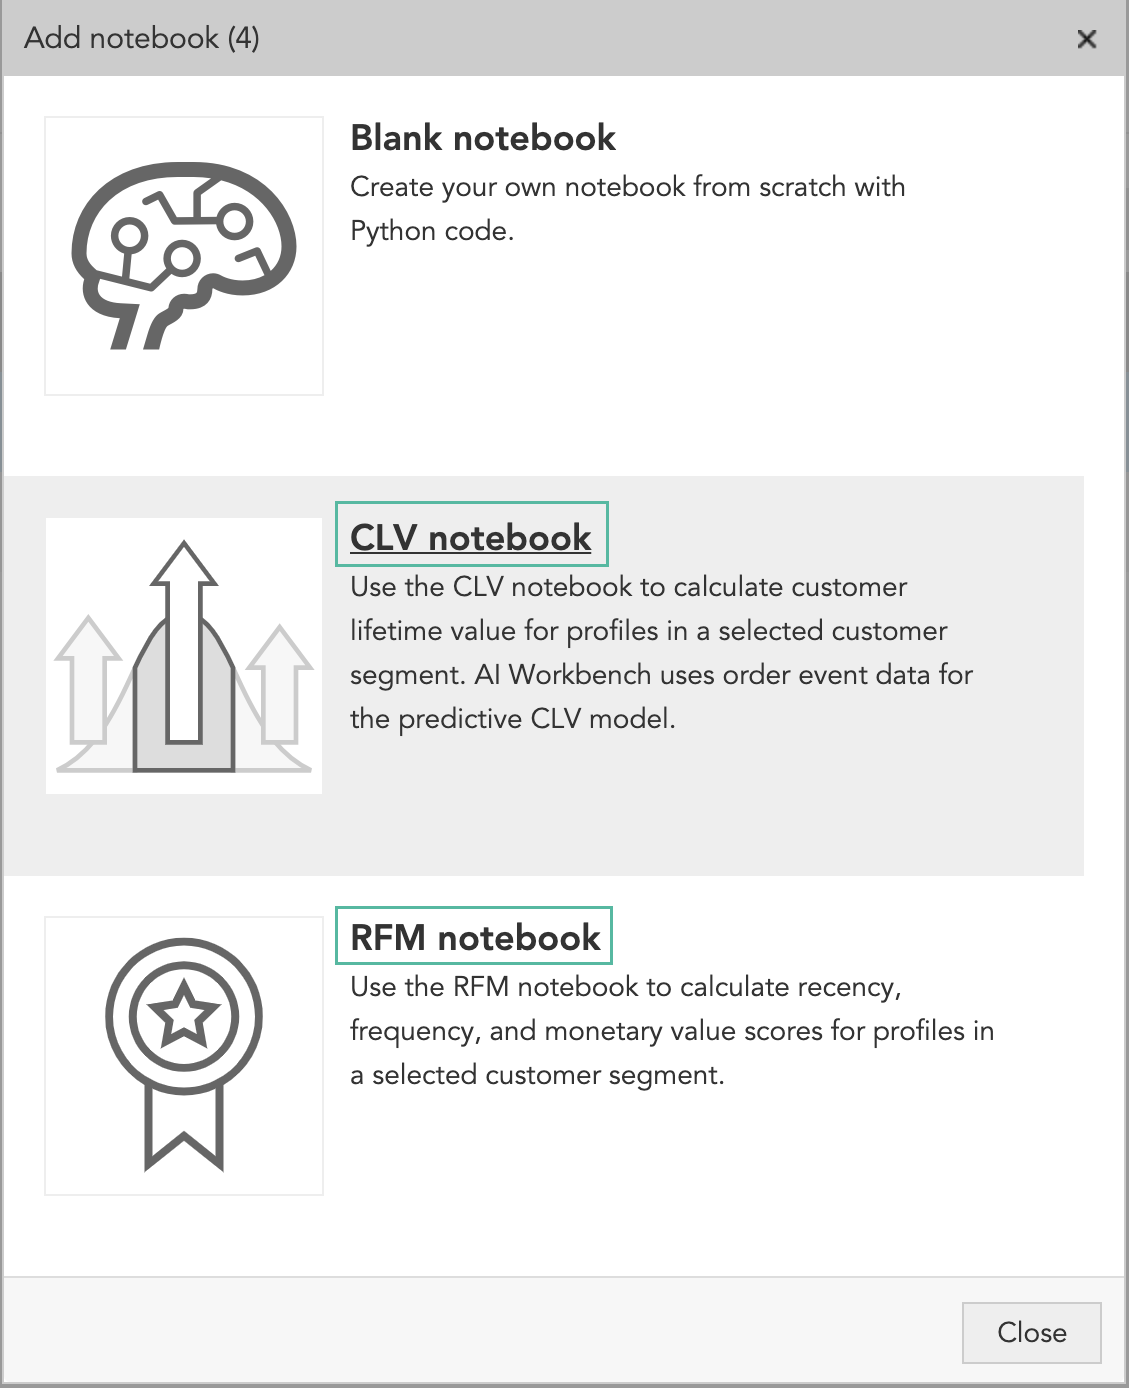 How to use AI marketing and AI machine learning to calculate CLV and RFM marketing models for customer segments in BlueConic CDP's AI Workbench